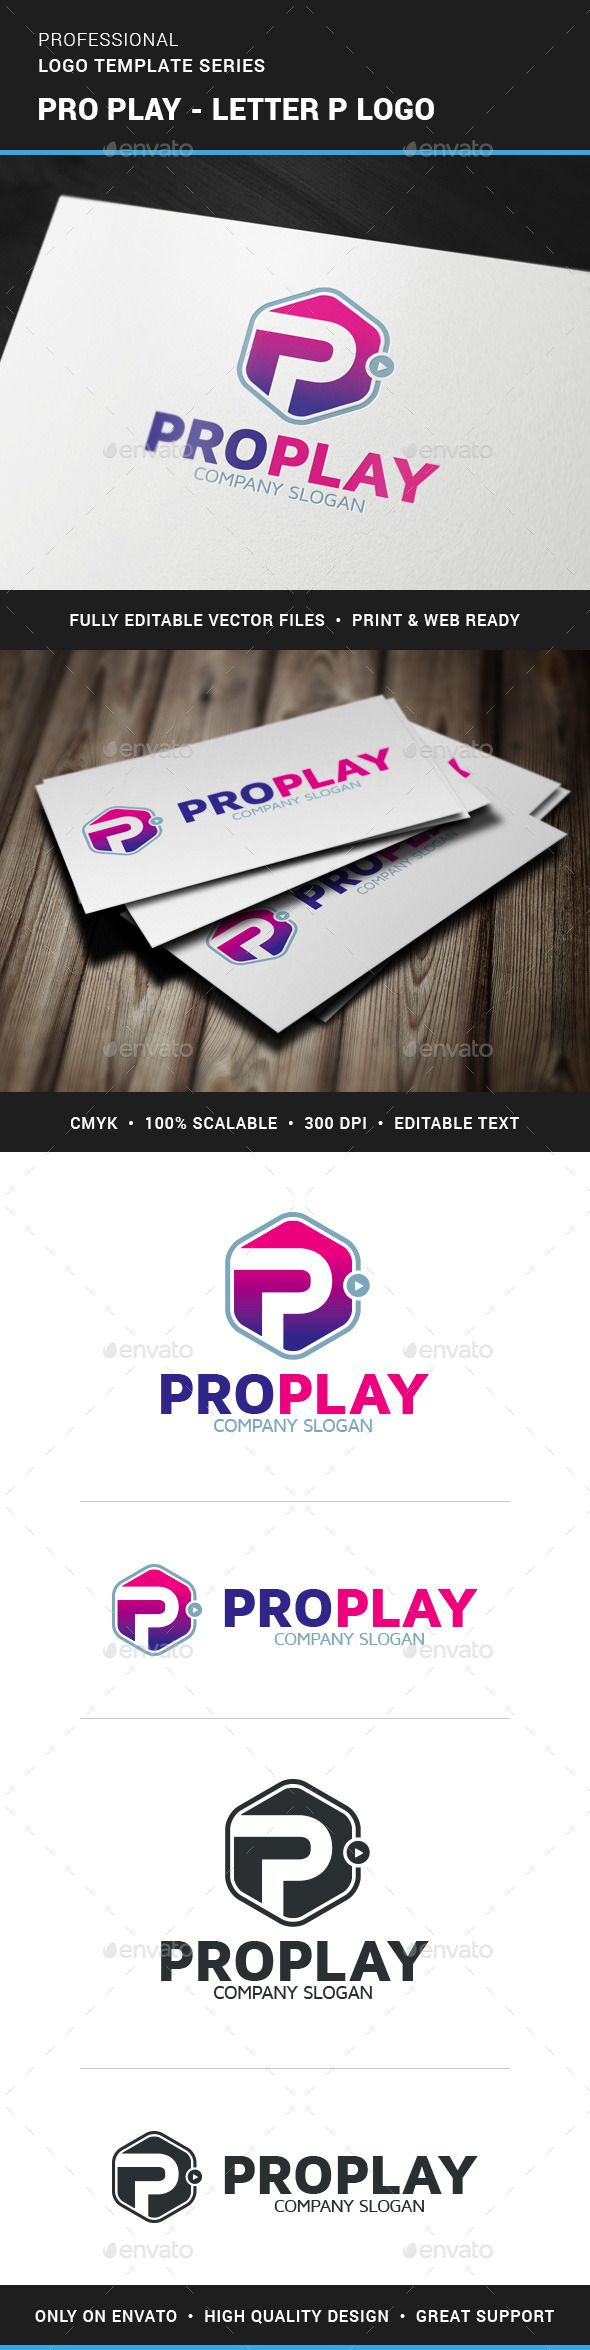 formats of business letters%0A Pro Play  Letter P Logo